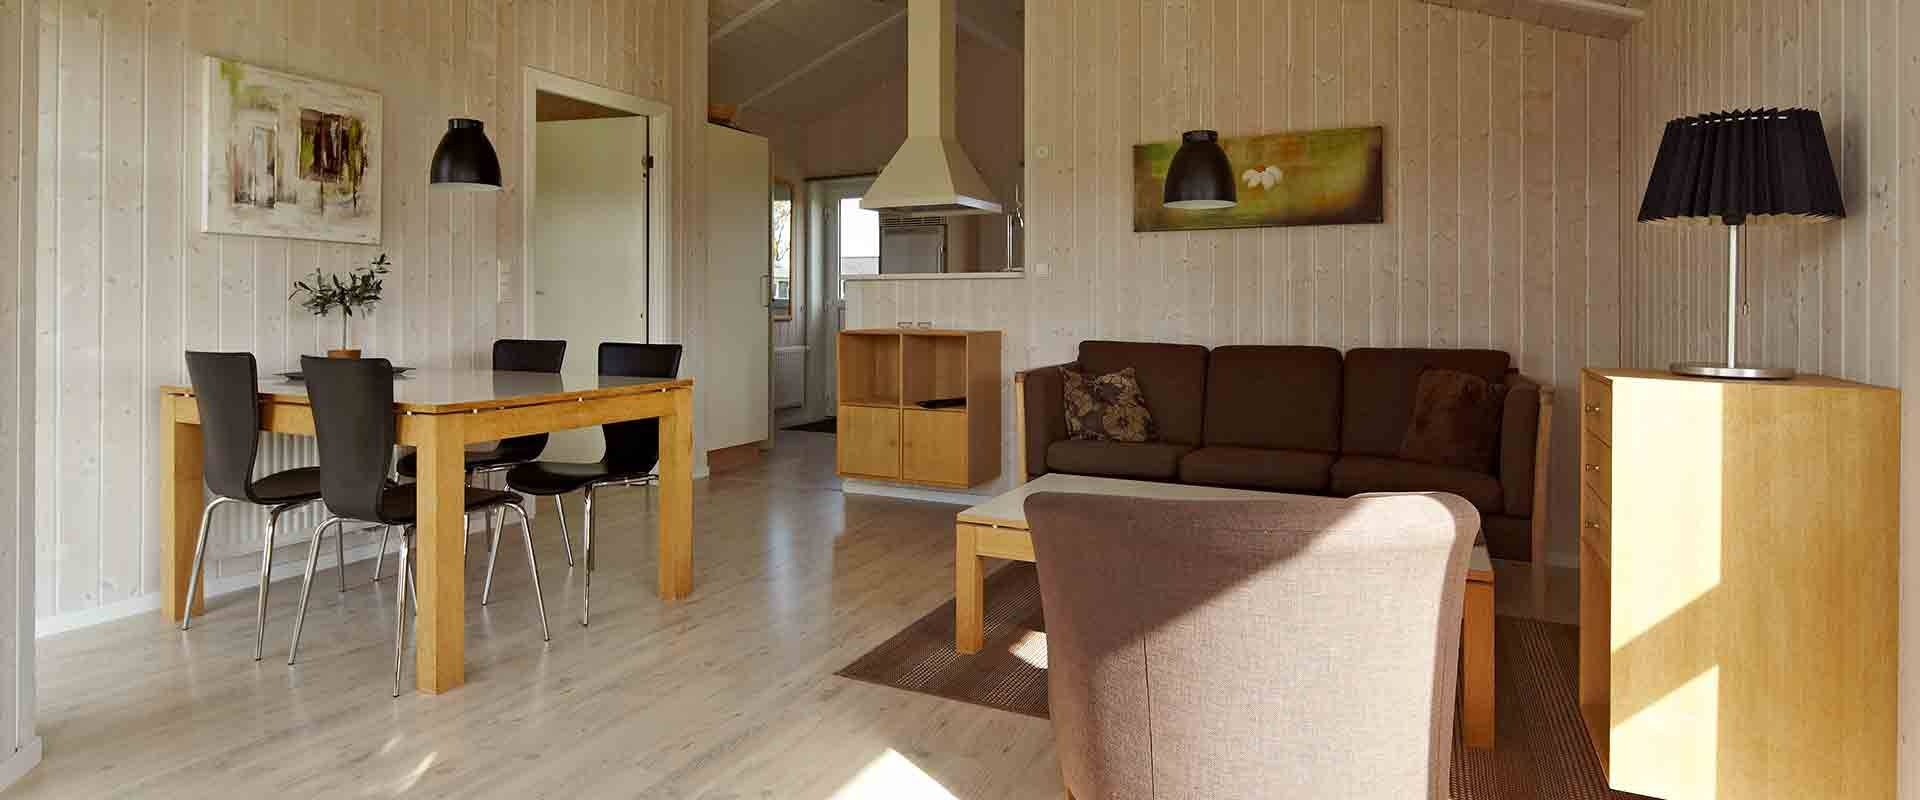 Classic 4 holiday home Lalandia in Billund